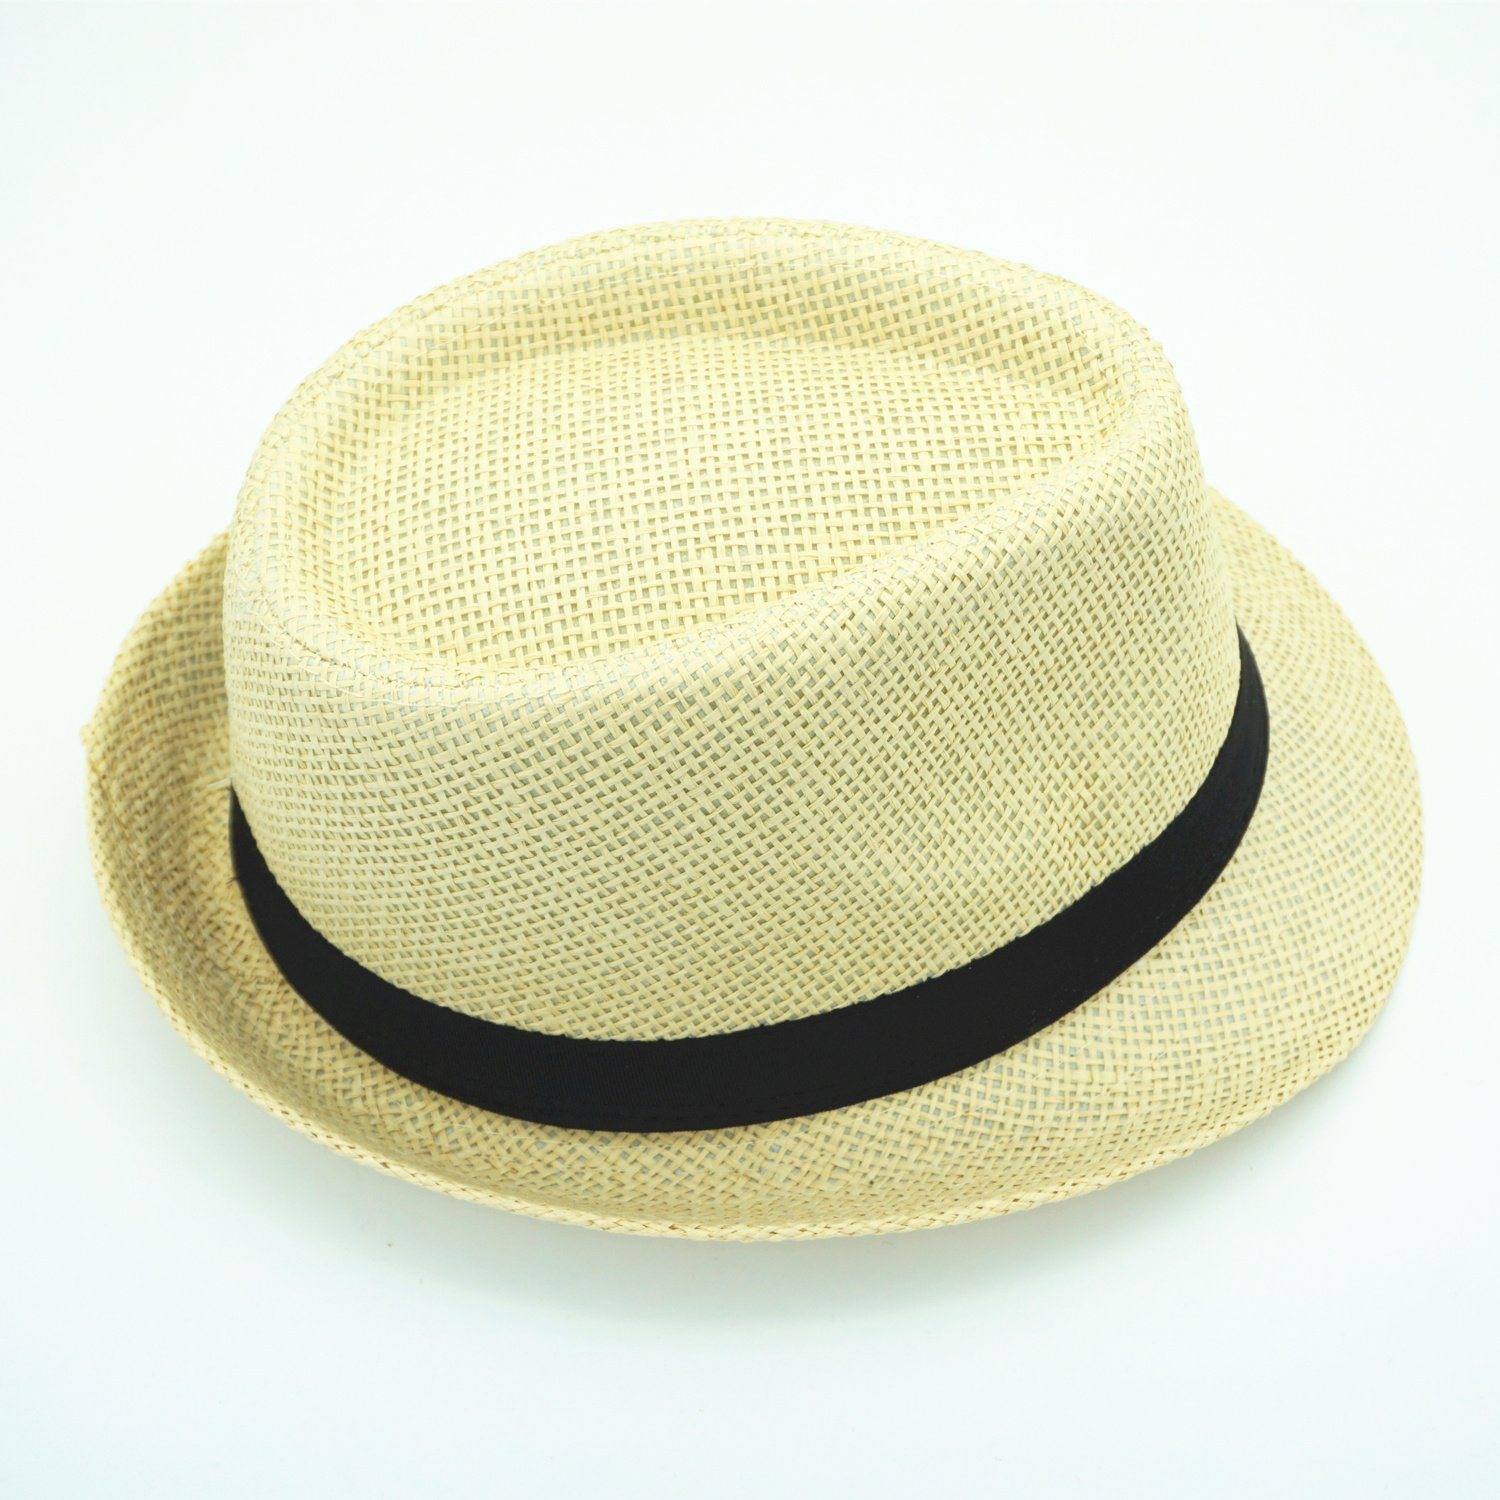 6542ffc0fa5 China Good Quality Customized Men′s Beige Summer Paper Straw Hat ...